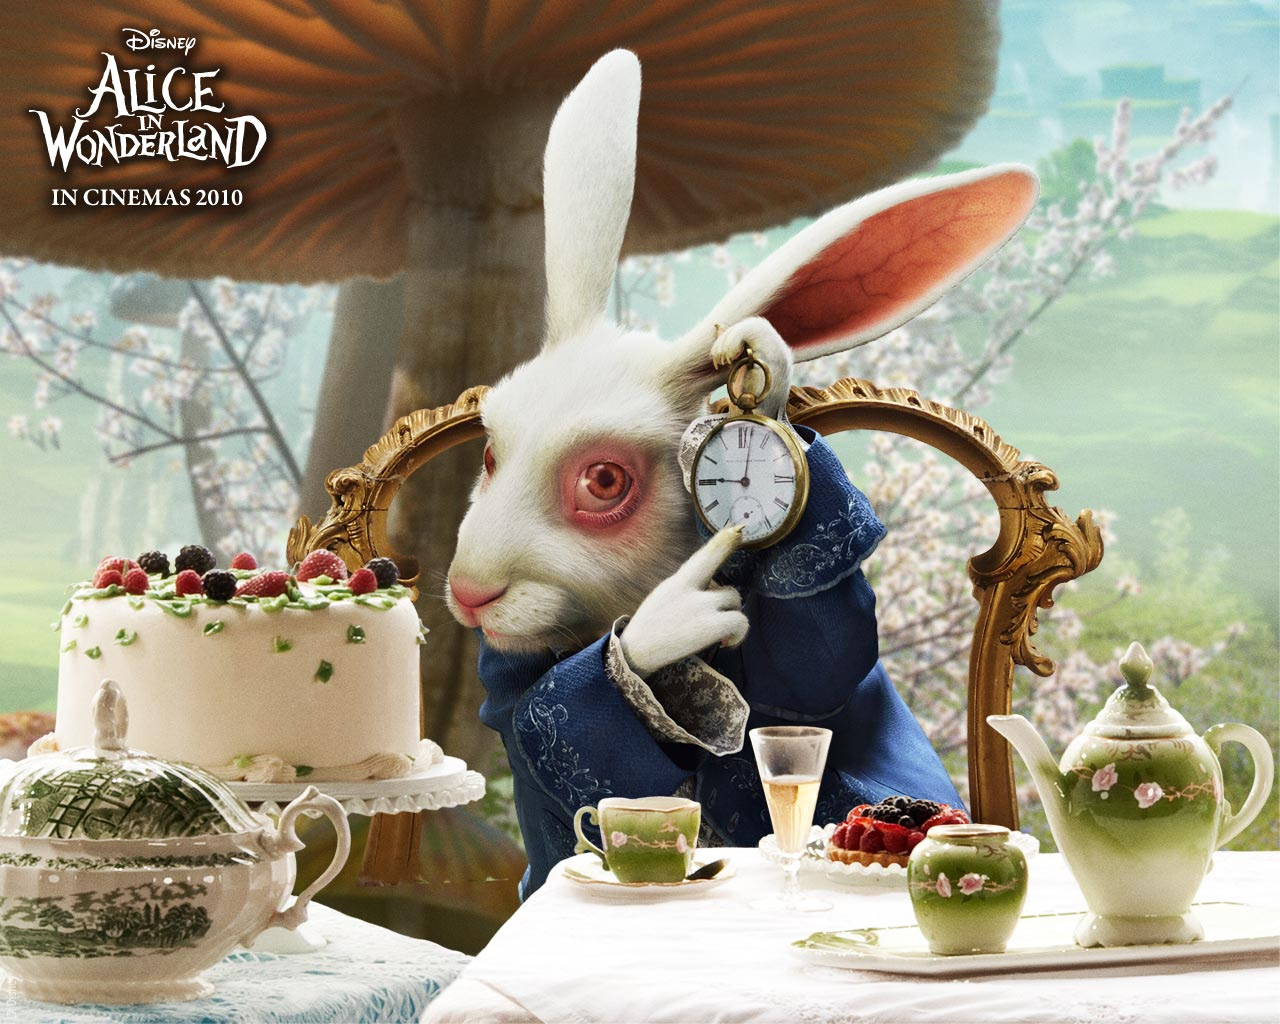 Alice In Wonderland Movie Hd Wallpapers And Screensaver Leawo